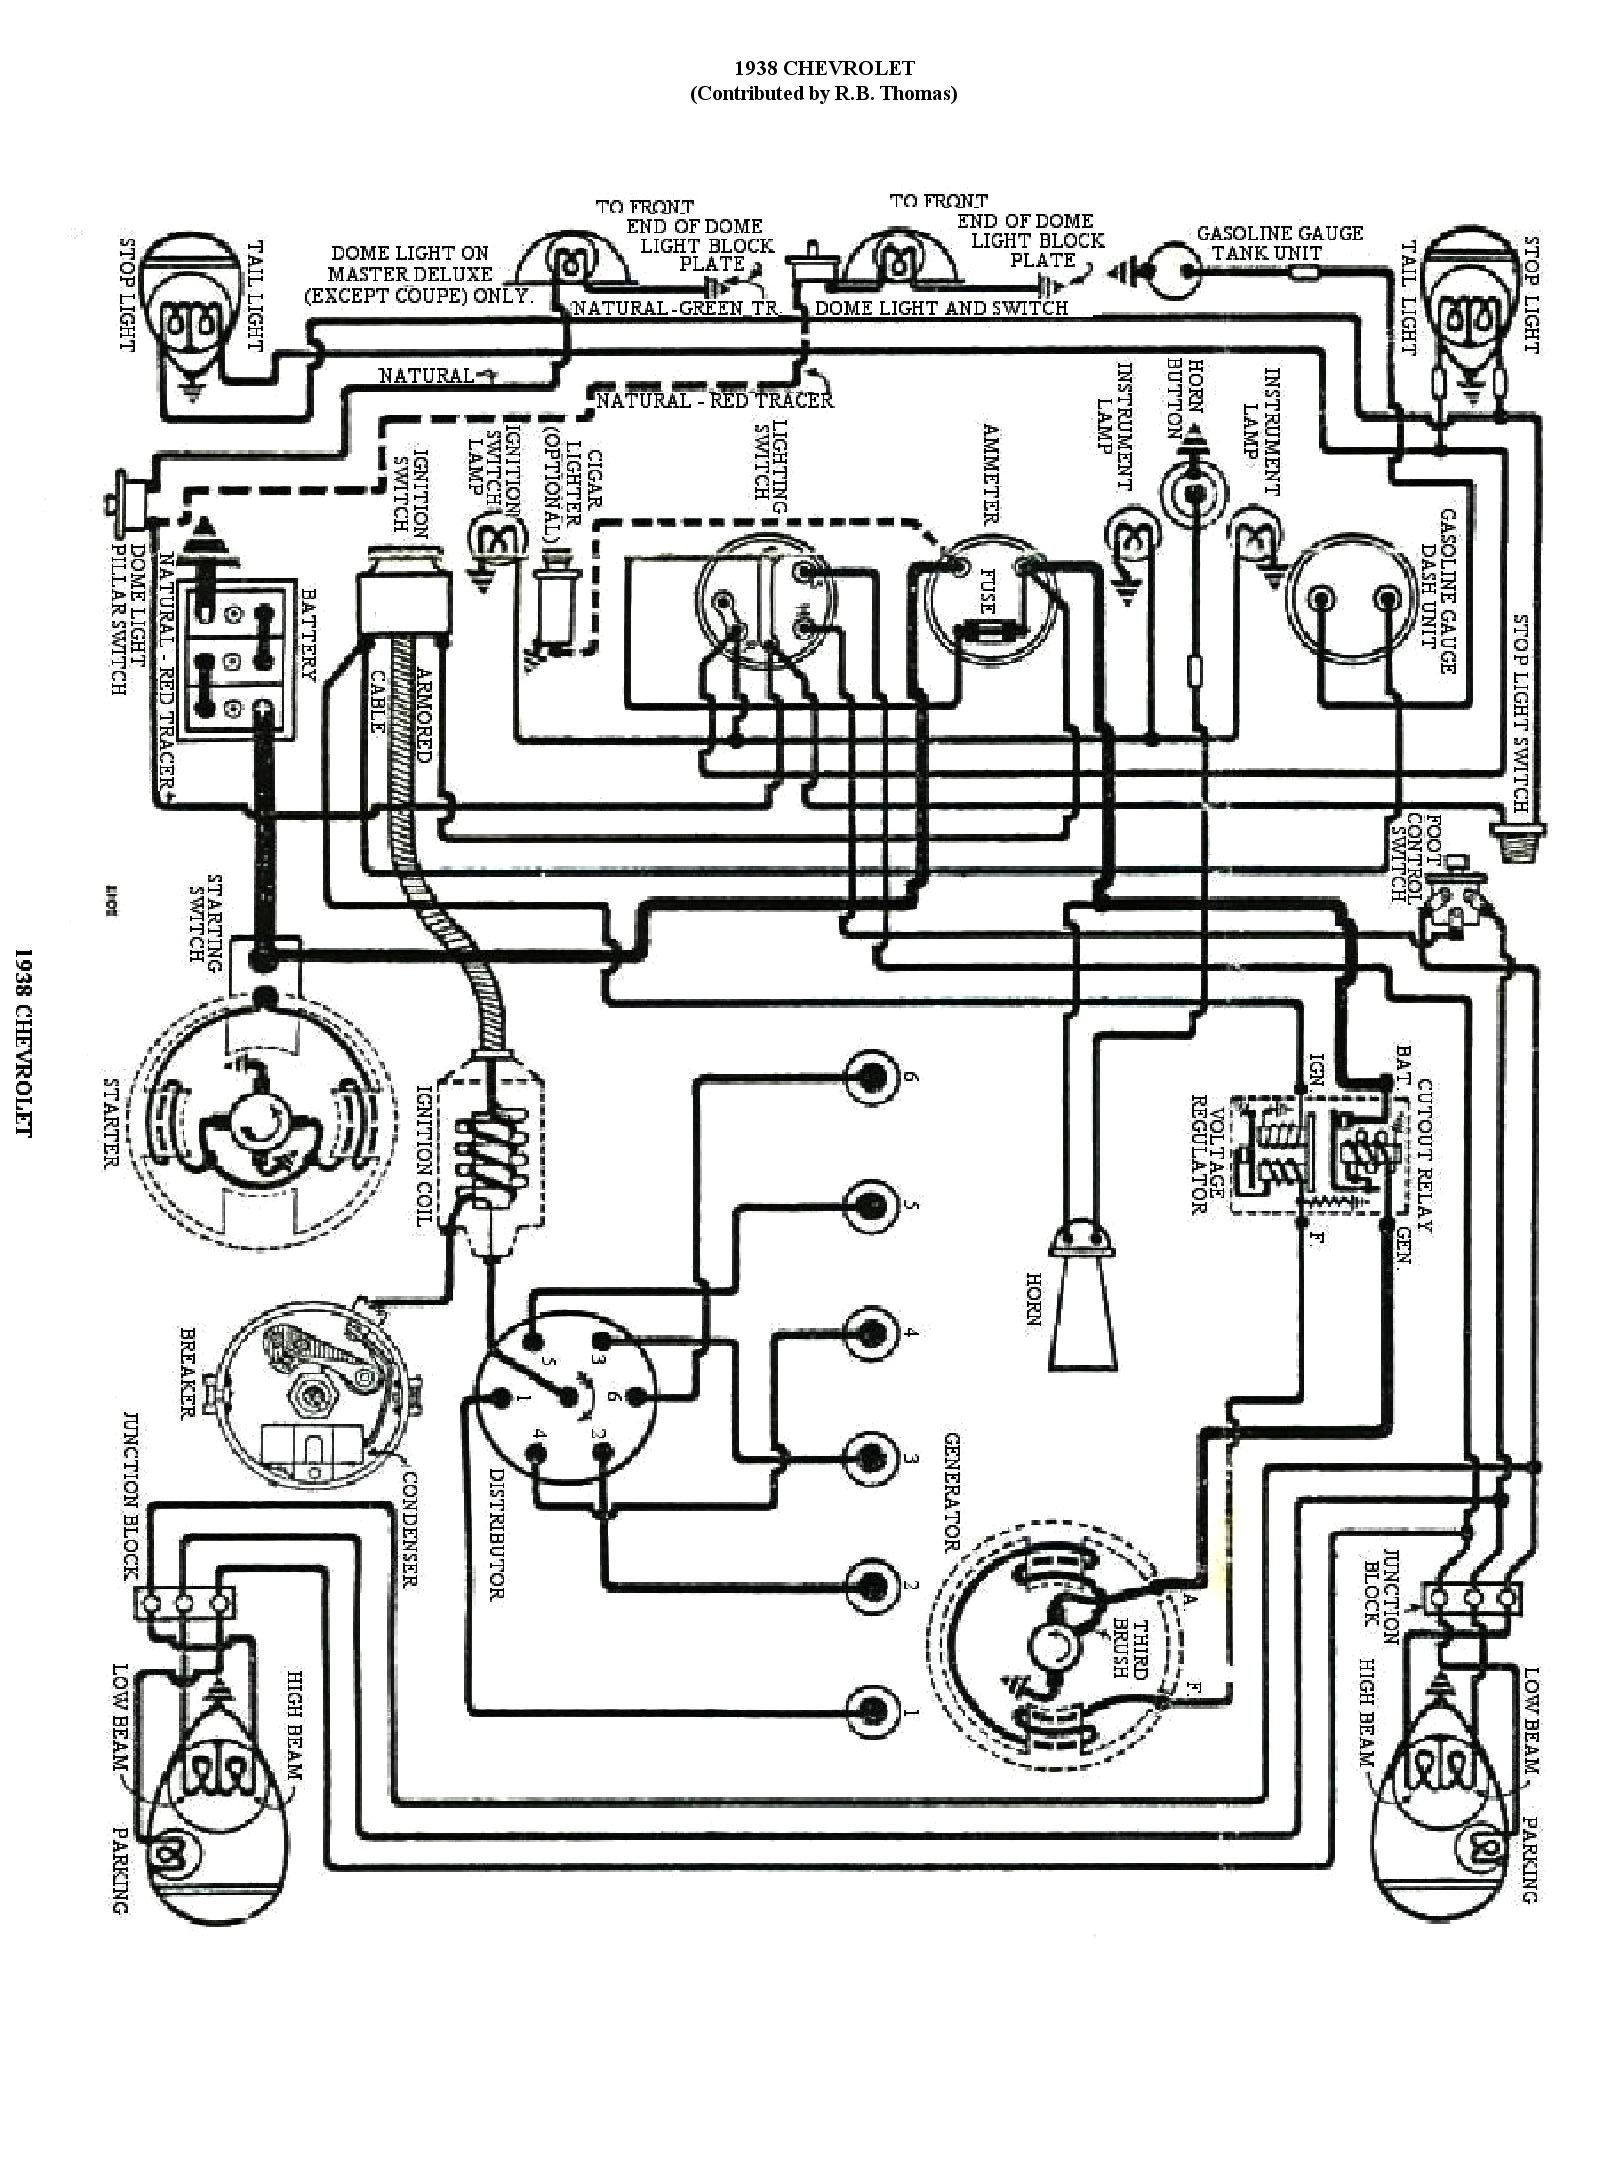 amp meter wiring diagram for ford with 1948 Ford Generator Wiring Diagram on RepairGuideContent further Viewtopic as well 344314333989995261 also 1210 1986 wiring likewise F150   Wiring Diagram.